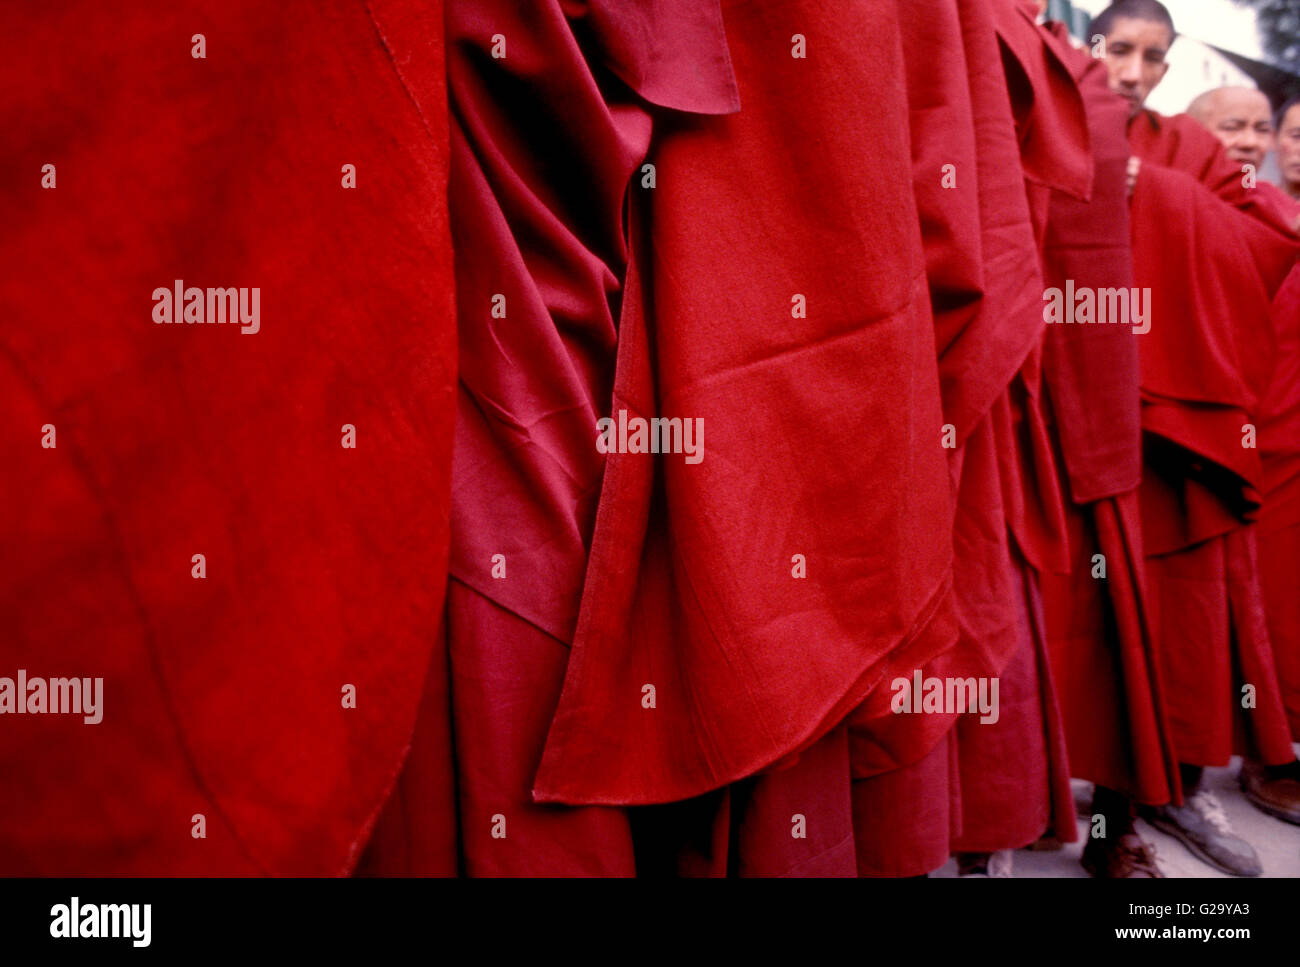 Tibetan monks stand in line to be blessed by the Dalai Lama in front of his home in Mcleod Ganj, India. - Stock Image